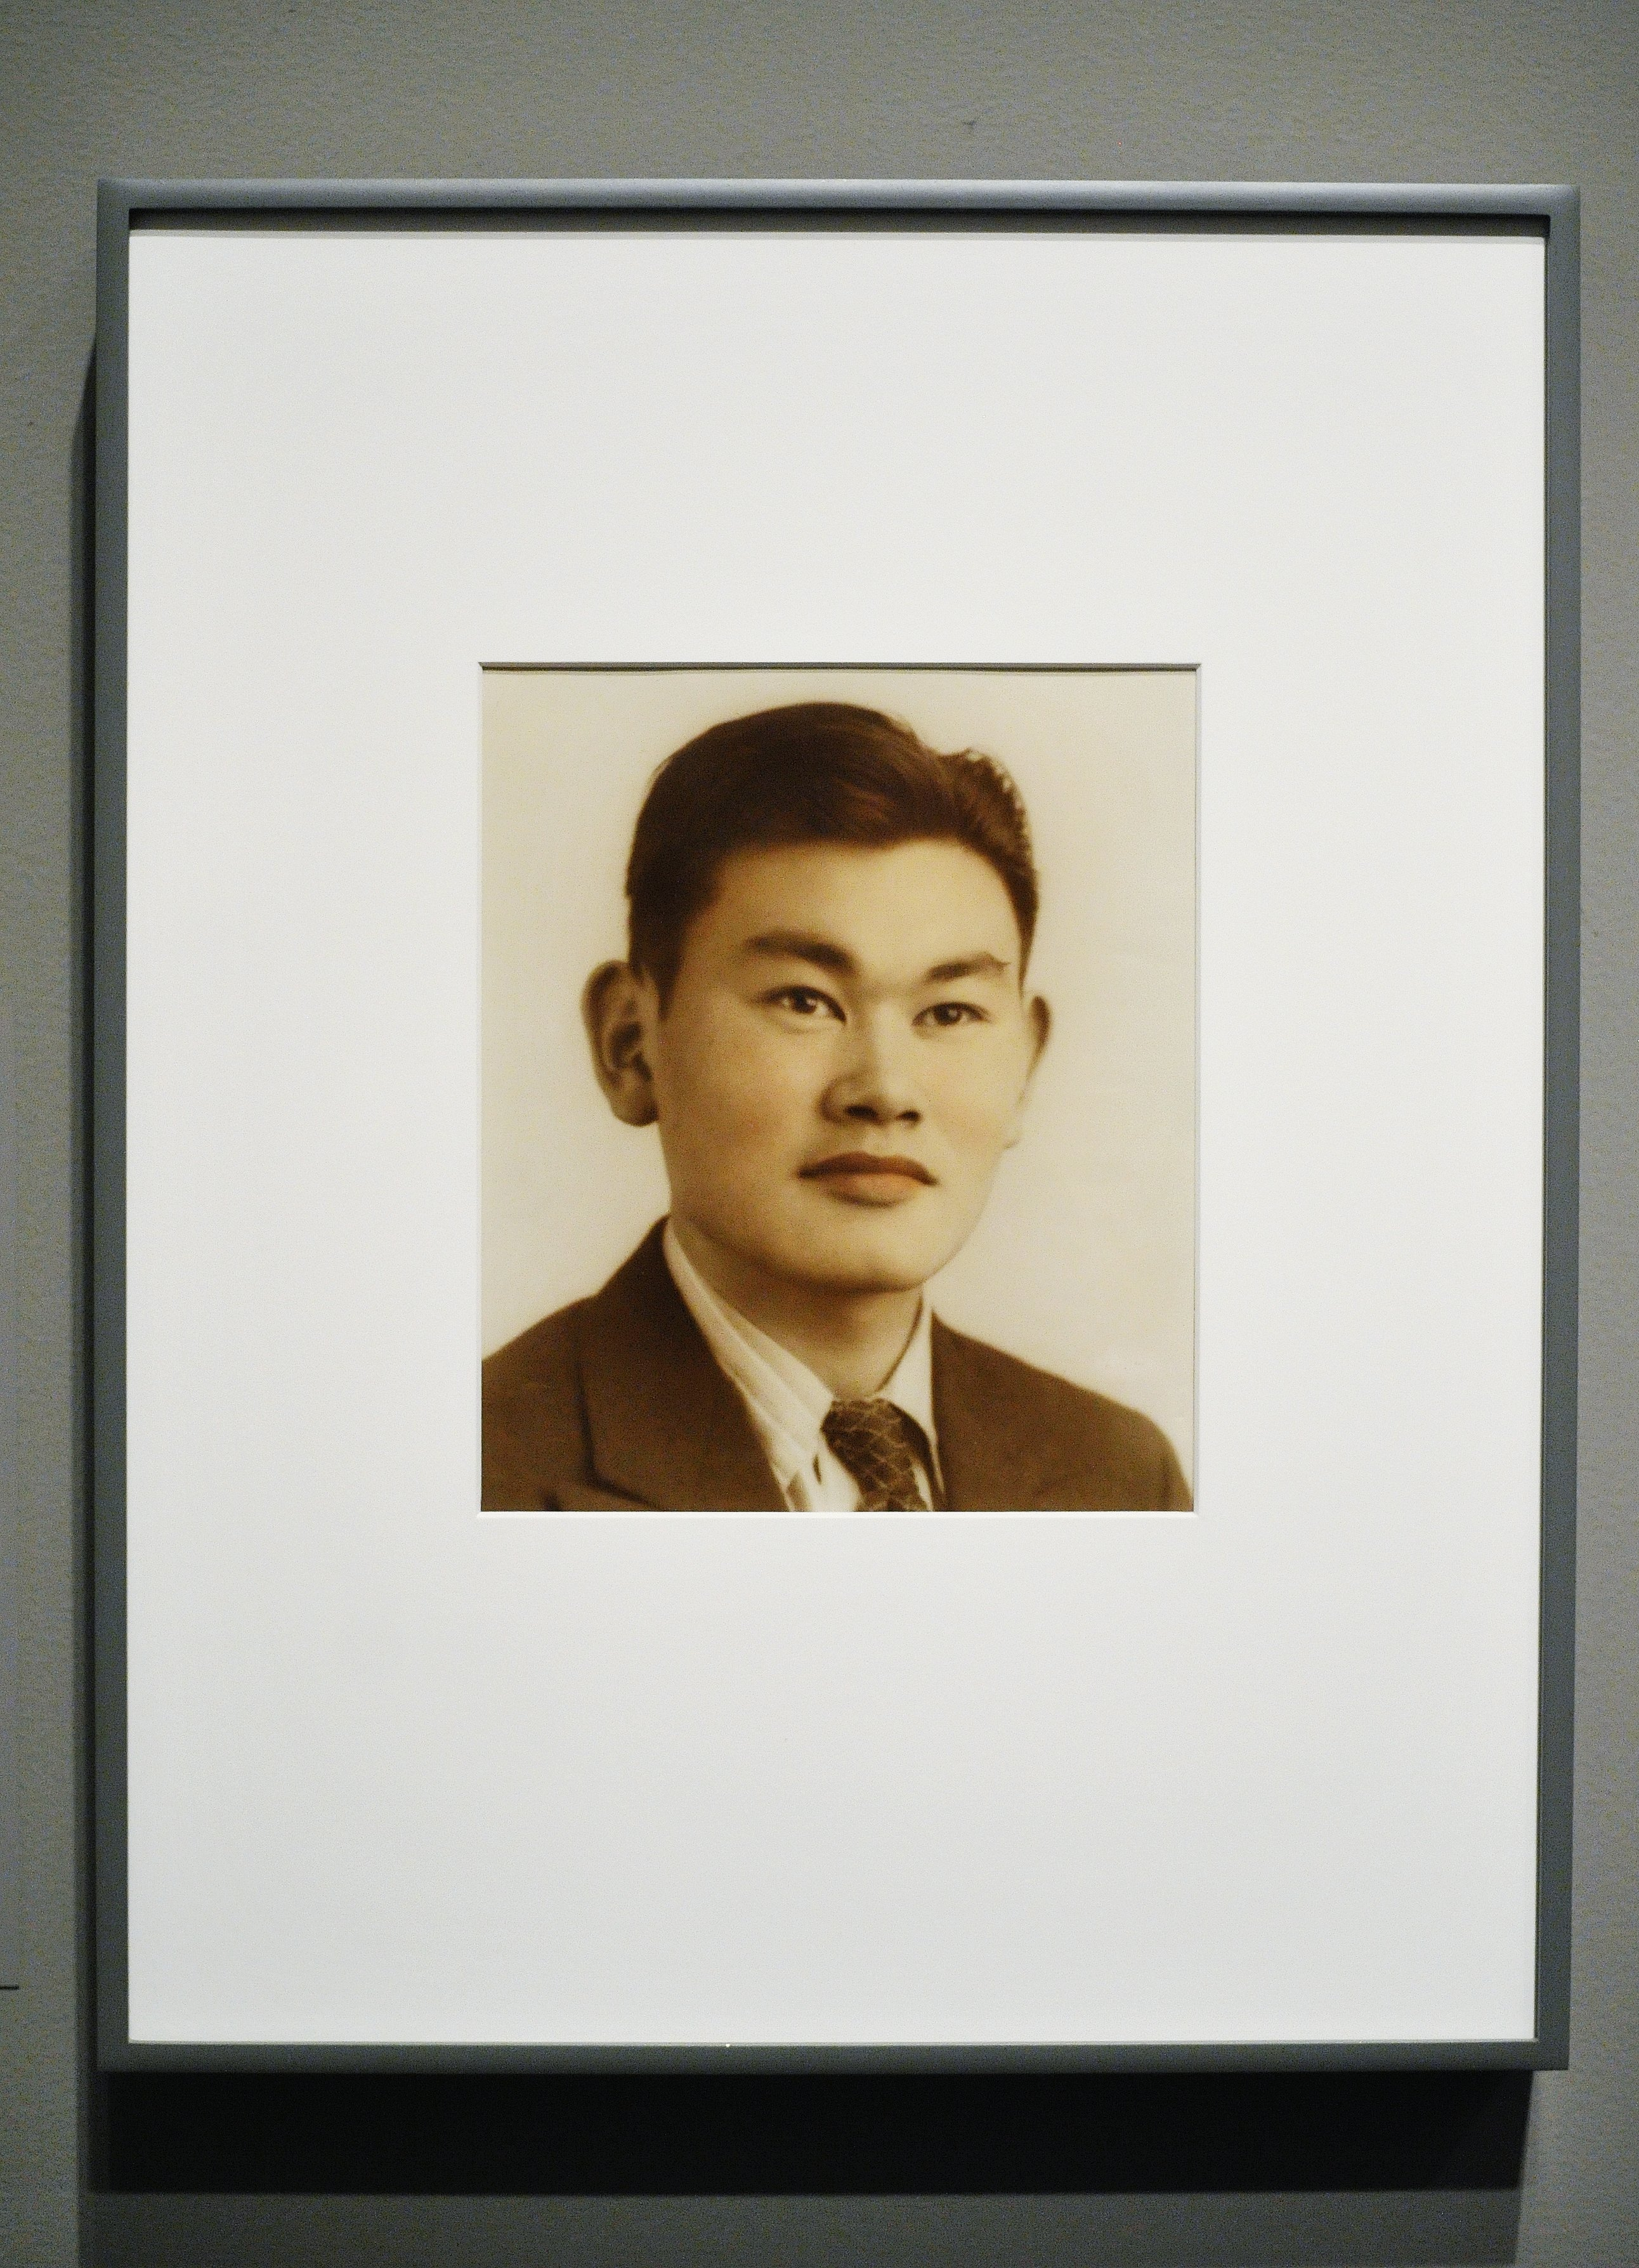 The portrait of Fred Korematsu is seen during its presentation to the National Portrait Gallery on February 2, 2012 in Washington, DC. The 1940s era photograph becomes part of the museum's permanent collection. (Getty)